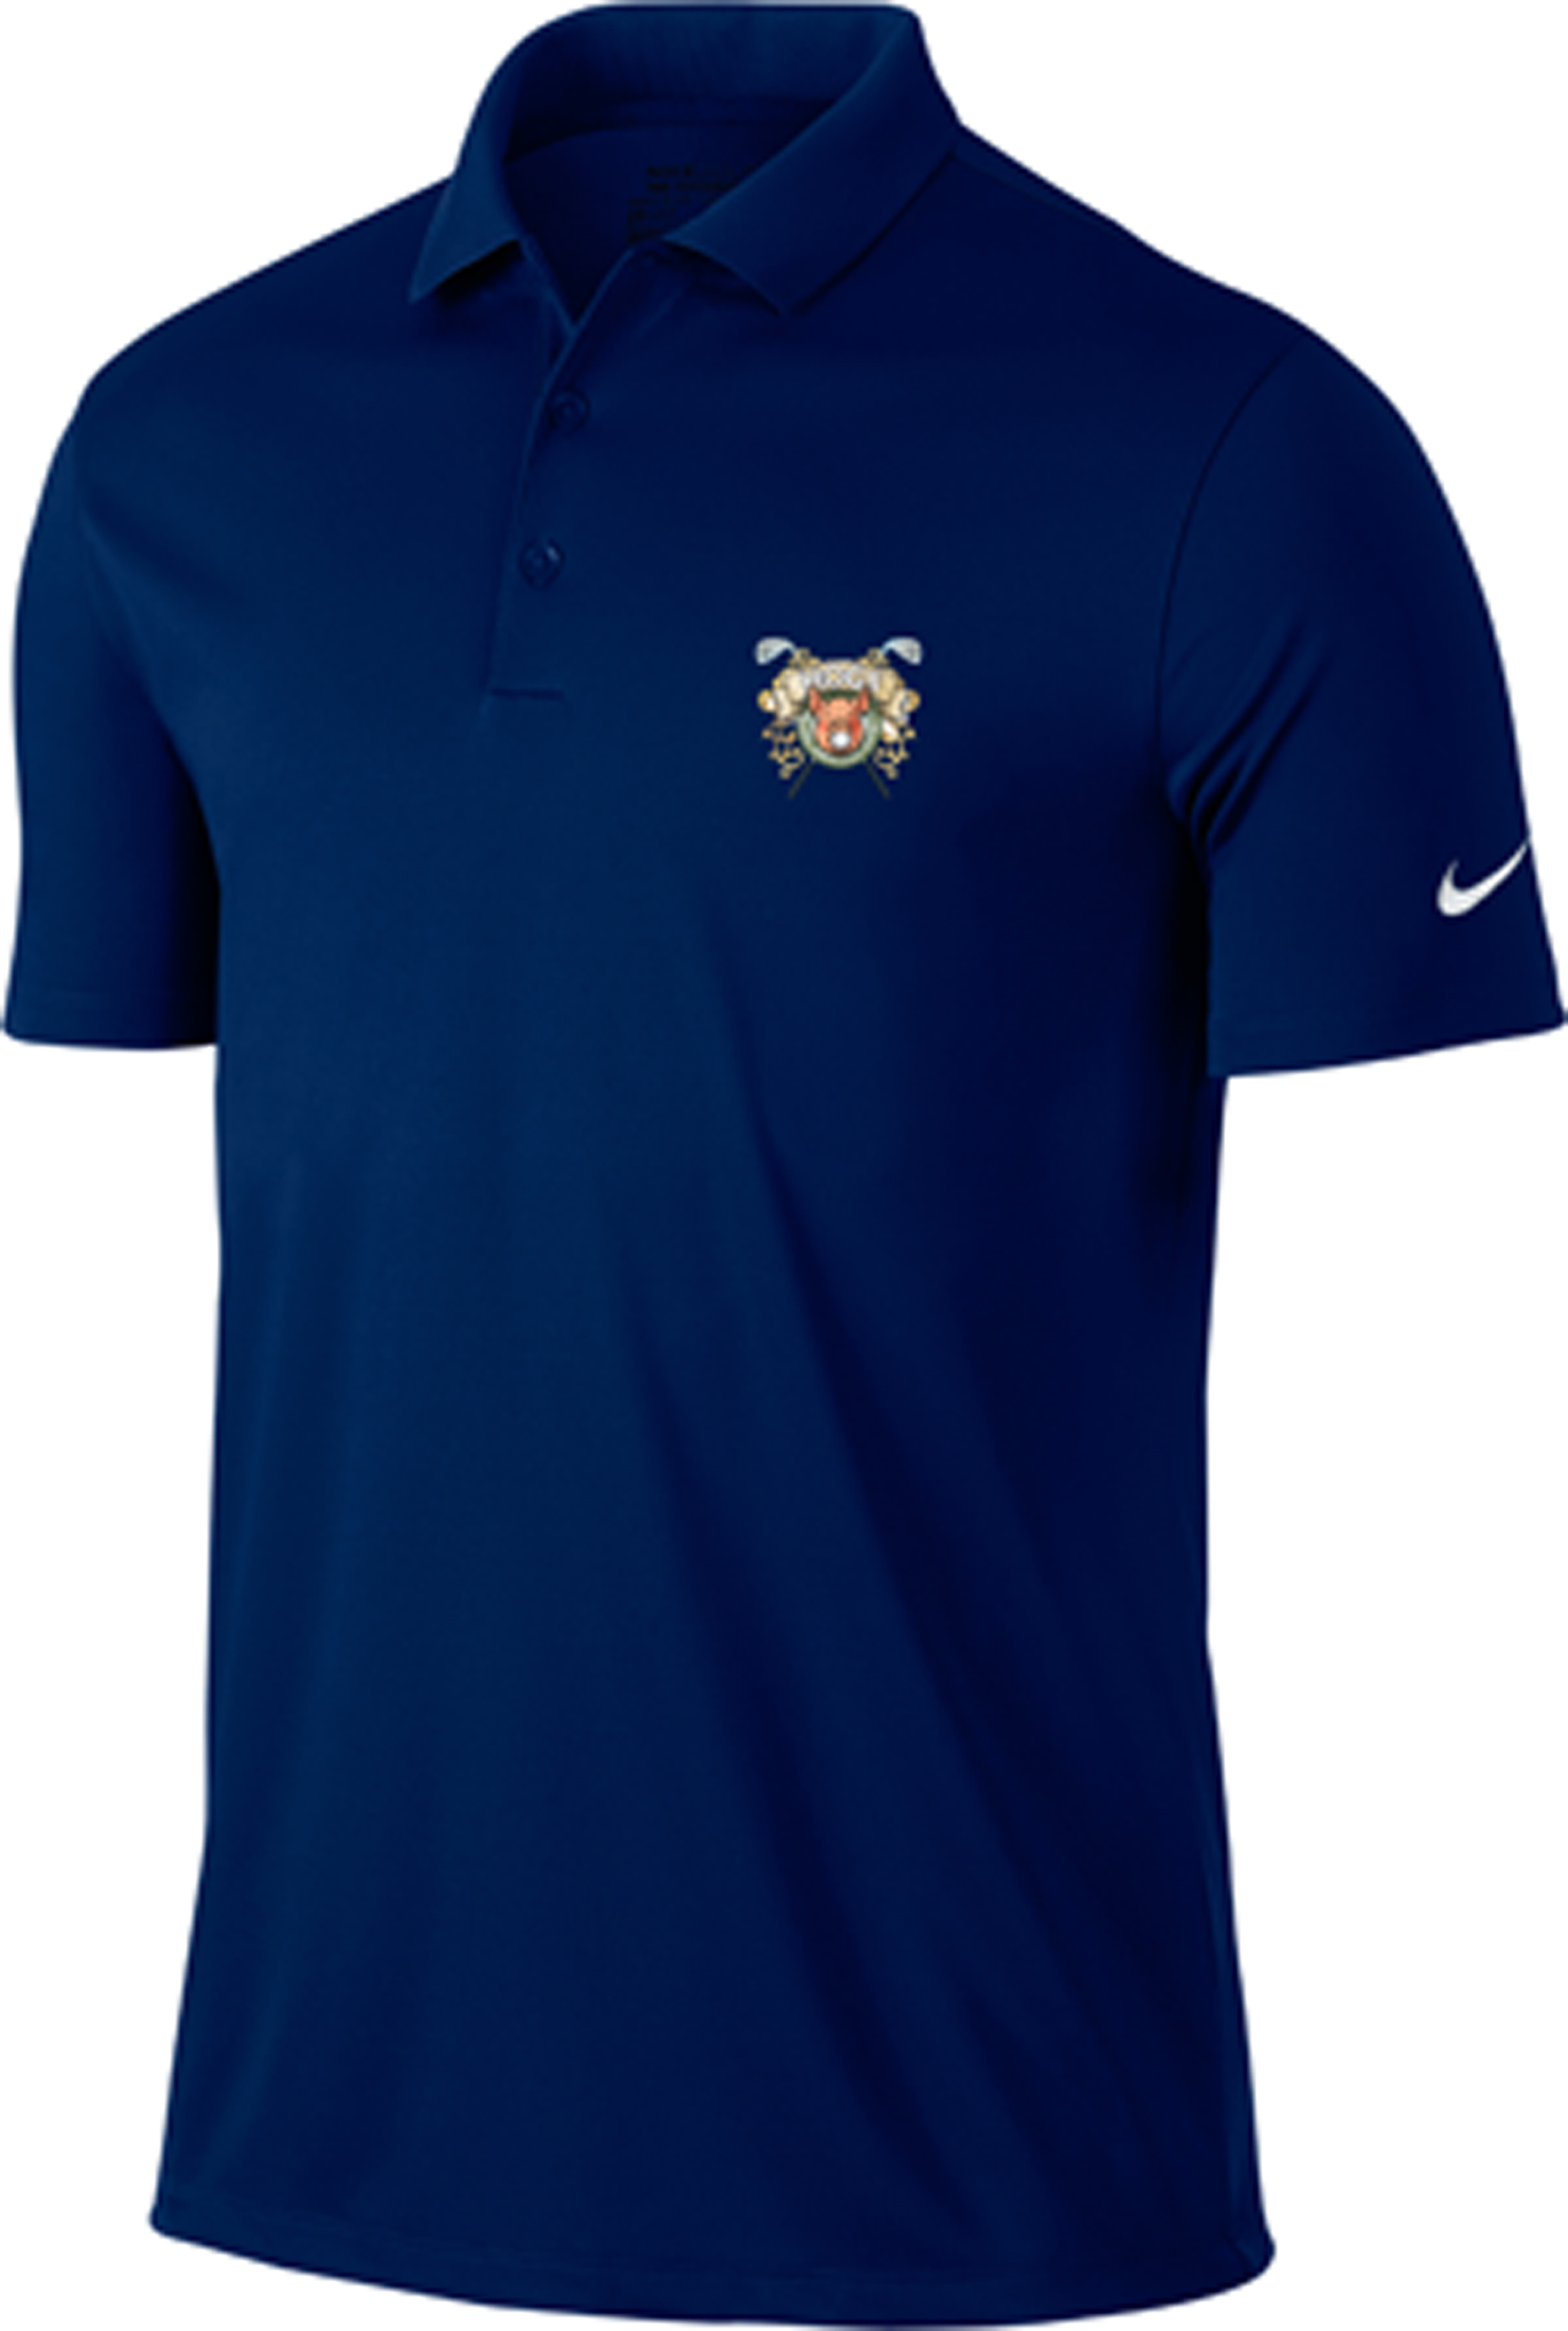 https://www.best4balls.com/pub/media/catalog/product/n/i/nike_logo_shirt300.jpg